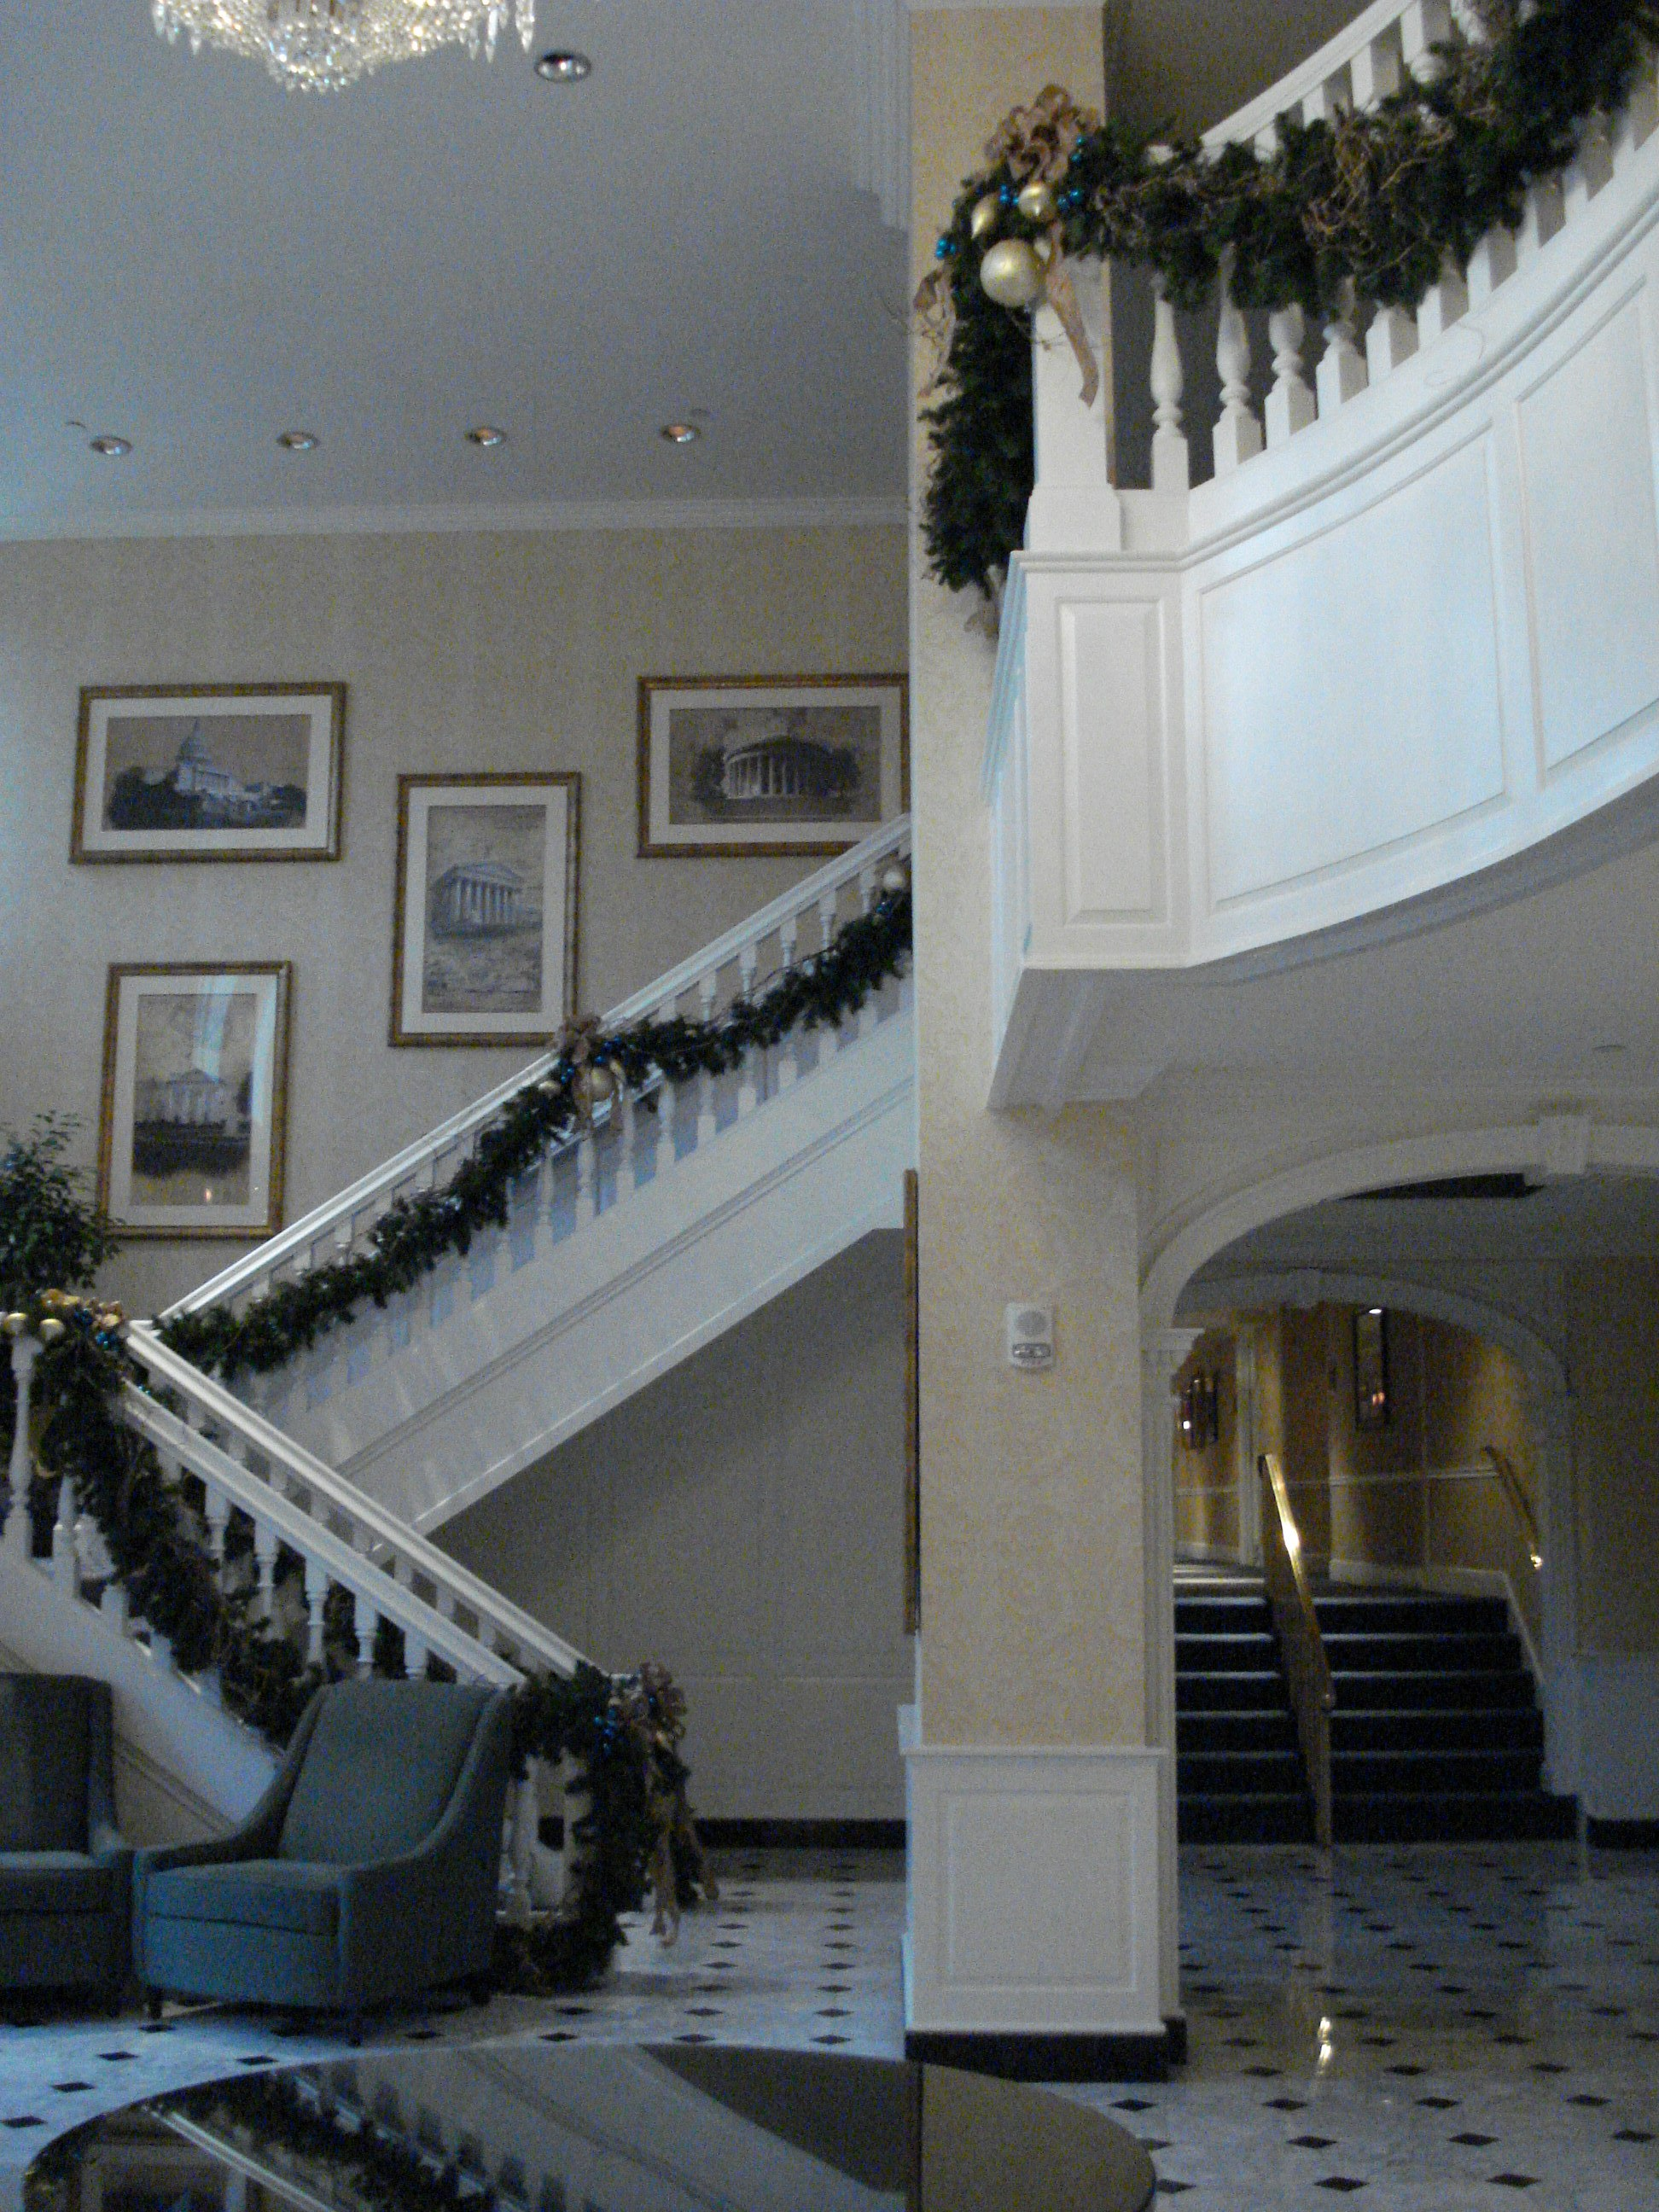 Stairwell leading up to balcony